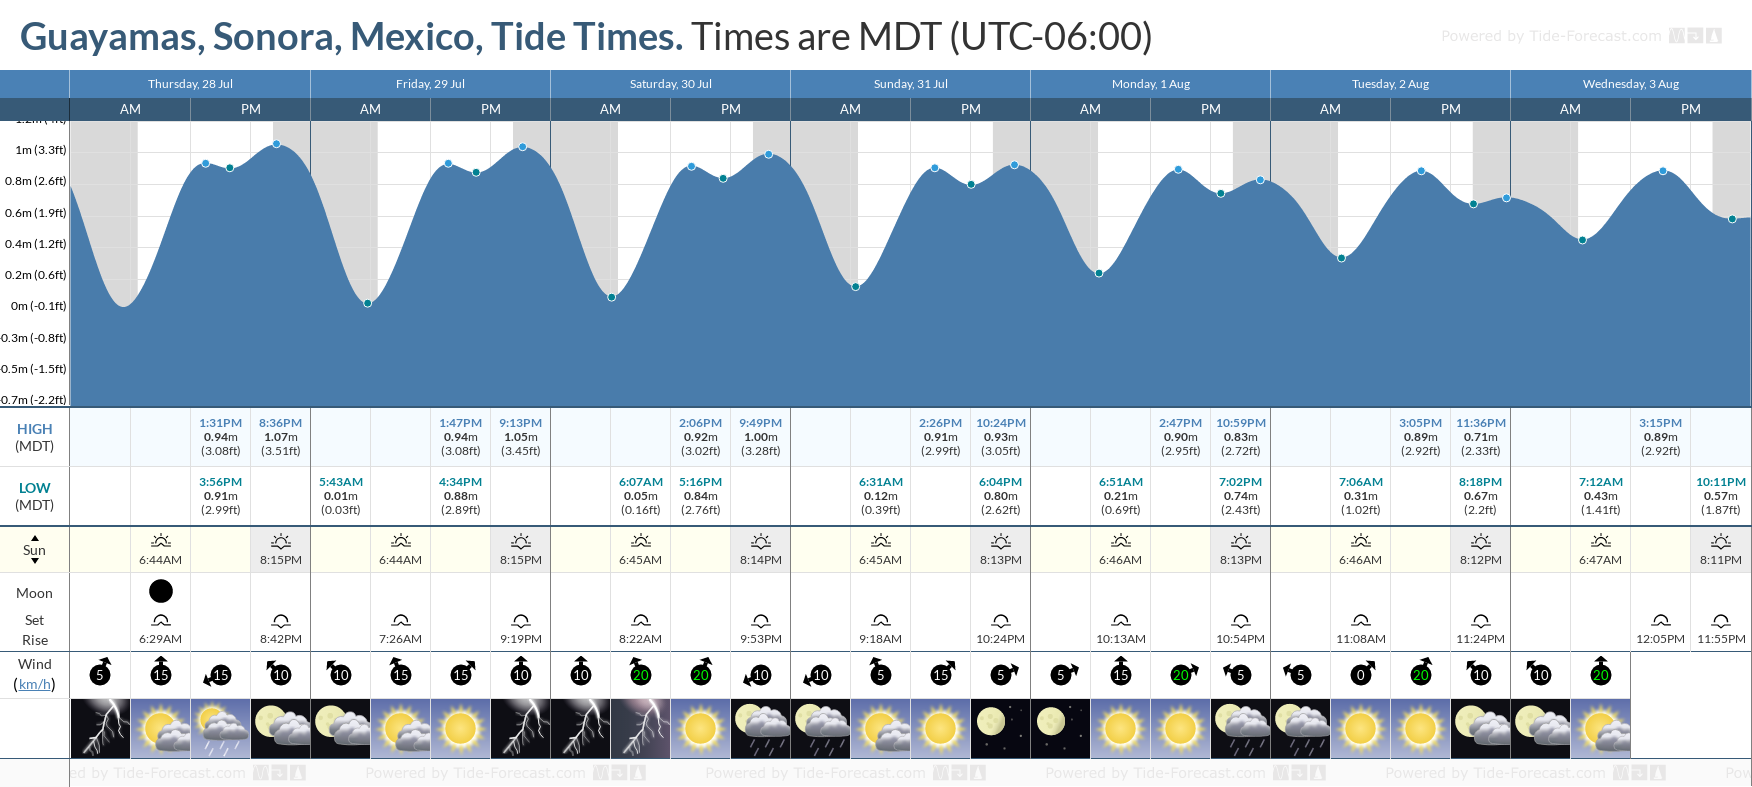 Guayamas, Sonora, Mexico Tide Chart including high and low tide tide times for the next 7 days